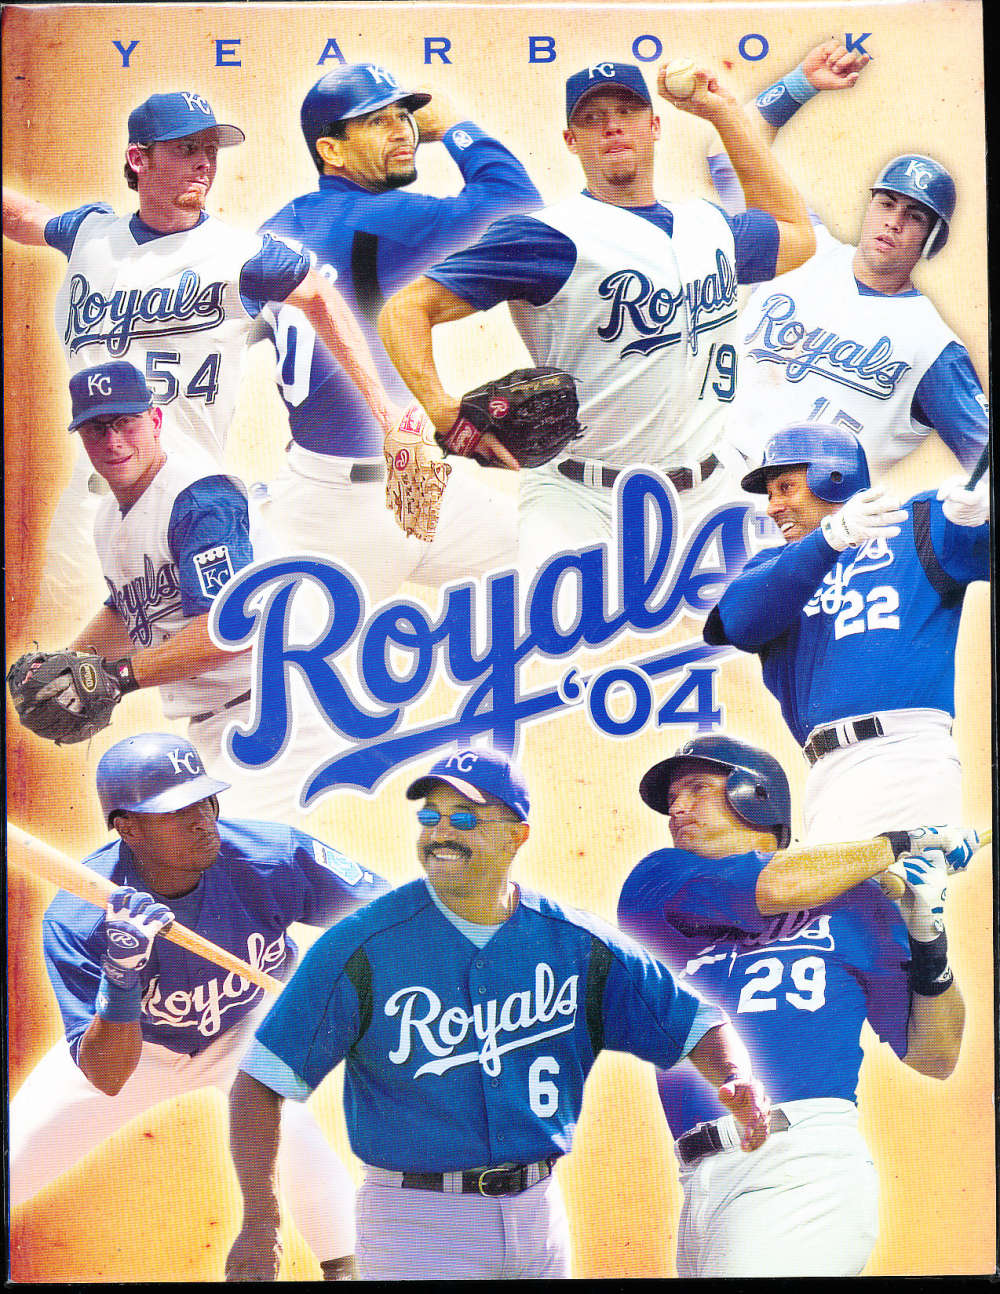 2004 Kansas city Royals baseball yearbook